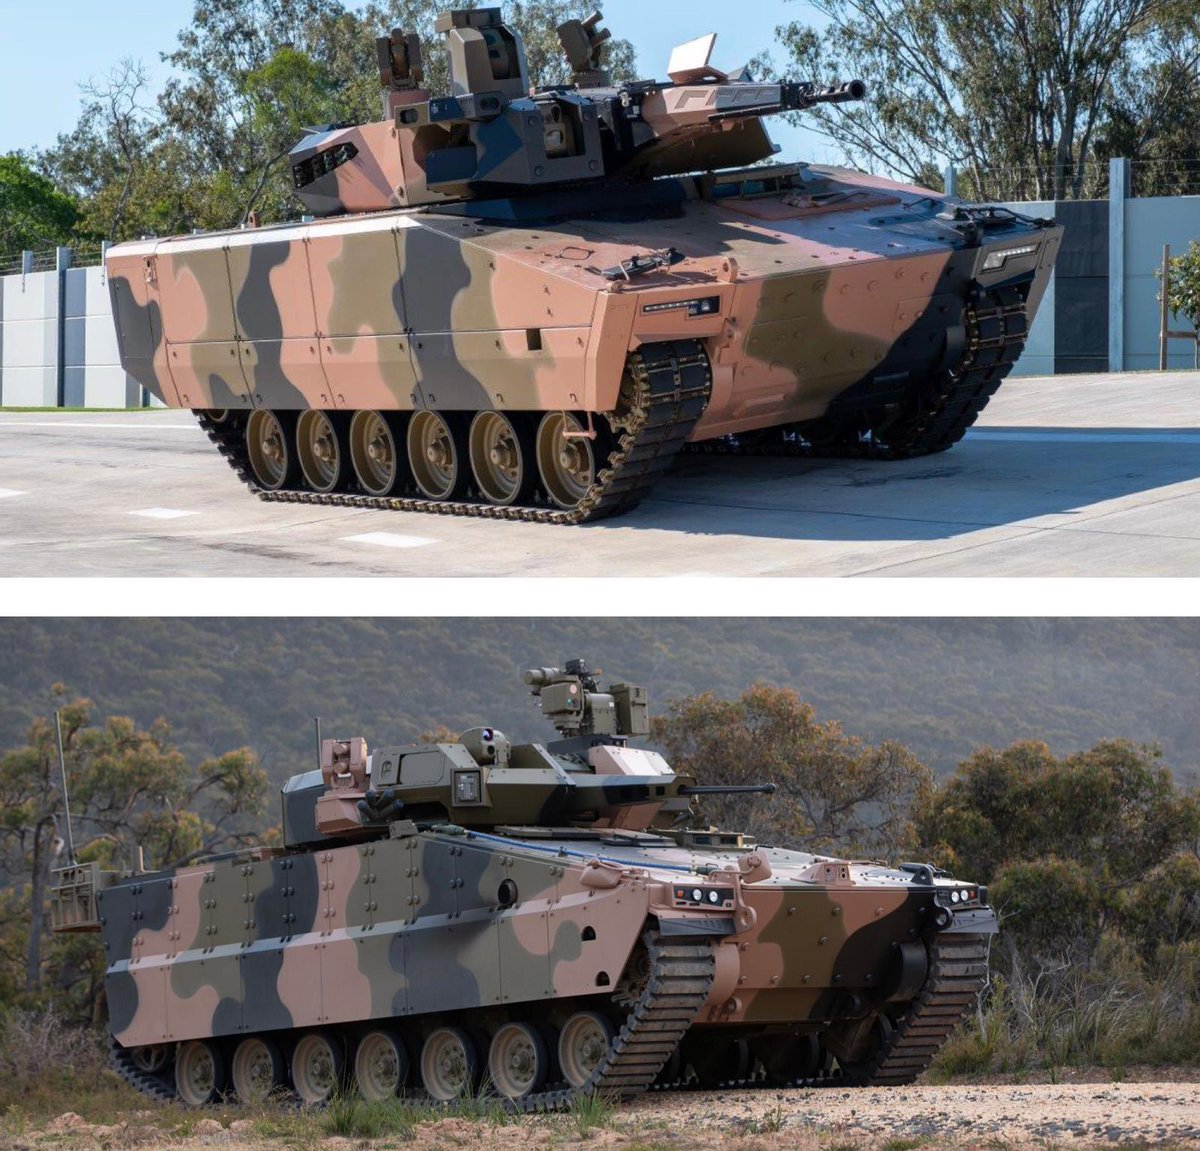 New milestone for the @ScottMorrisonMP Gov's multi-billion dollar Infantry Fighting Vehicles program ✅. 6 prototype test & evaluation vehicles have been delivered. The LAND 400 Phase 3 Program will equip #AusArmy with advanced, cutting-edge Infantry Fighting Vehicle capability.